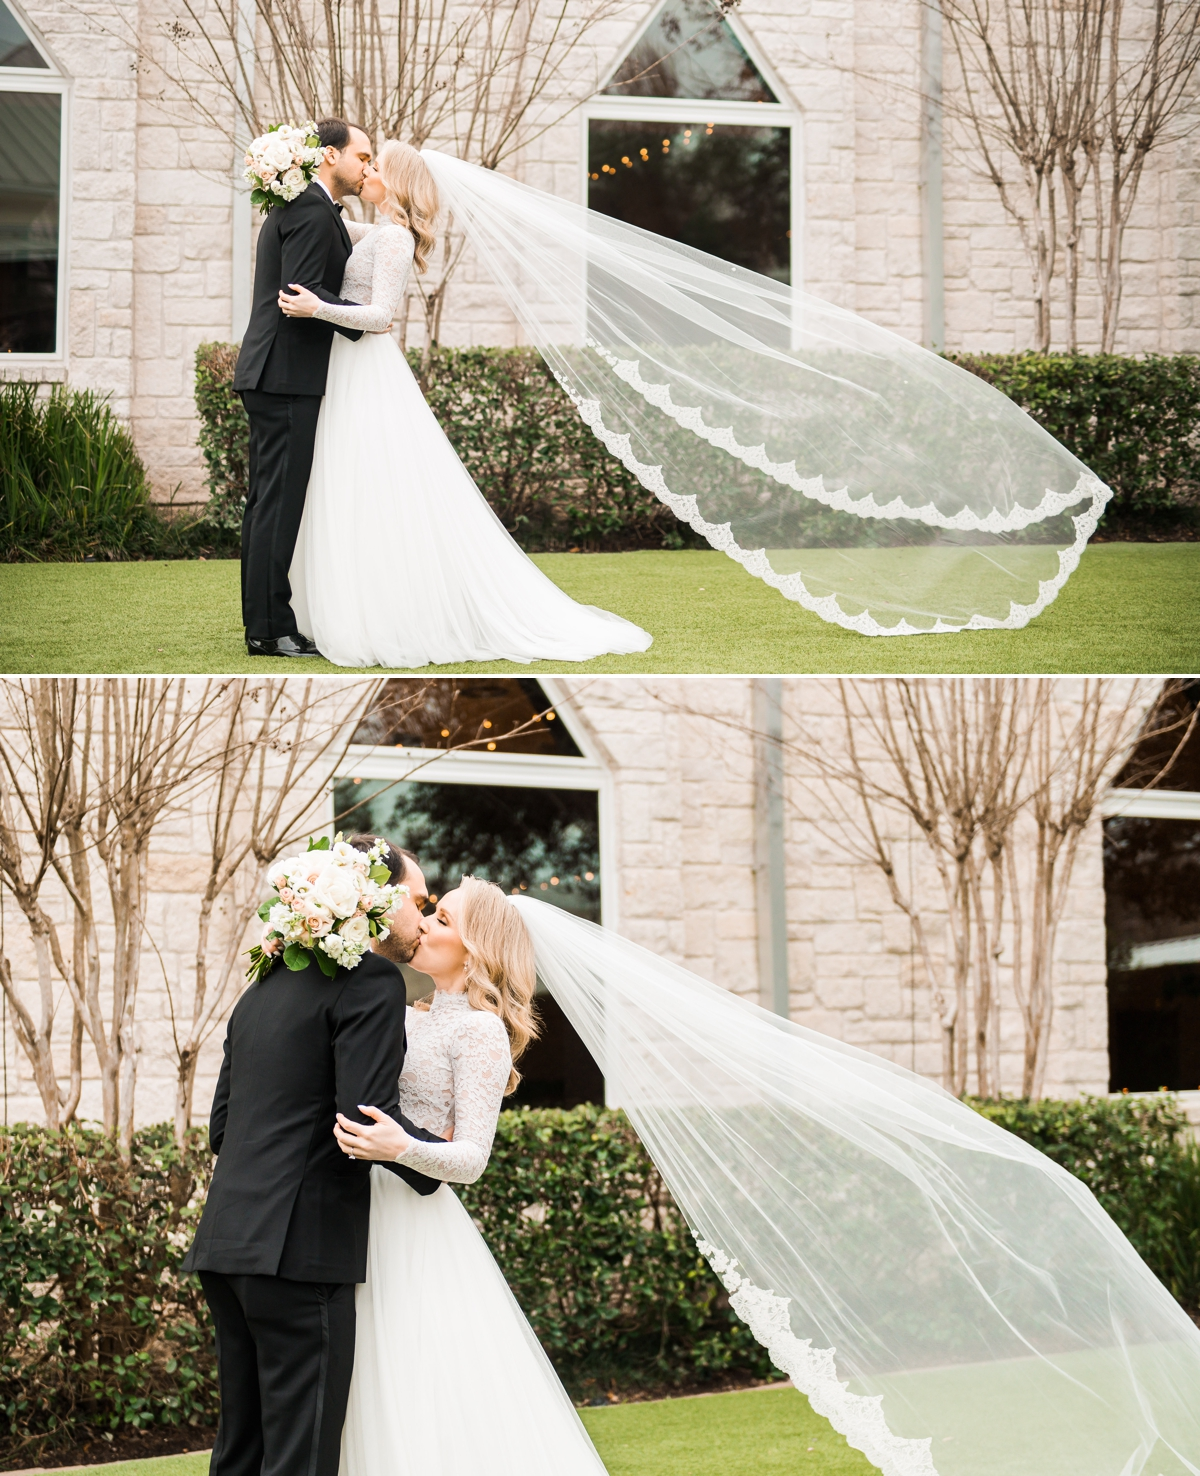 Romantic Bride and Groom Wedding Portraits with Bride's veil flying in the wind at Briscoe Manor Wedding